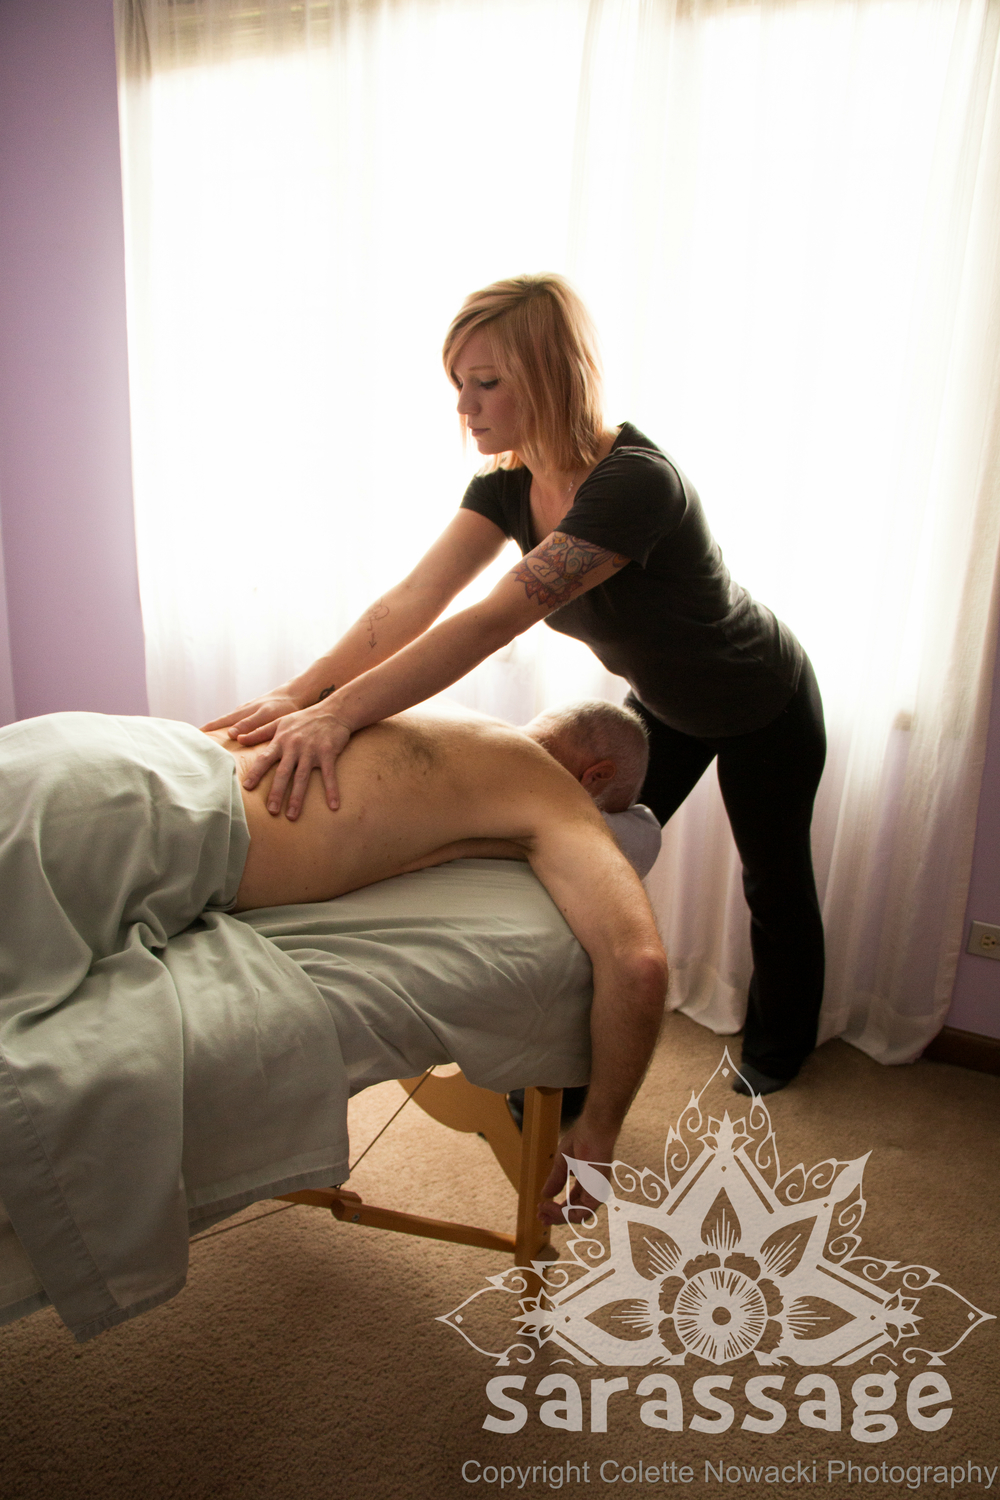 Swedish/Deep Tissue (Custom)    30/$40 | 45/$55 | 60/$70 | 75/$85 |90/$100 | 120/$140   Combines the six traditional components of Swedish massage at a customized pressure of your comfort level. Components include effleurage (long strokes), petrissage (kneading), tapotement (rhythmic drumming), friction, vibration/shaking and compression. Each session also includes heat therapy with moist heat packs to penetrate deep layers of muscle tissue for optimum healing and relaxation.When booking, please schedule as a custom massage and be prepared to discuss your session goals with your therapist.